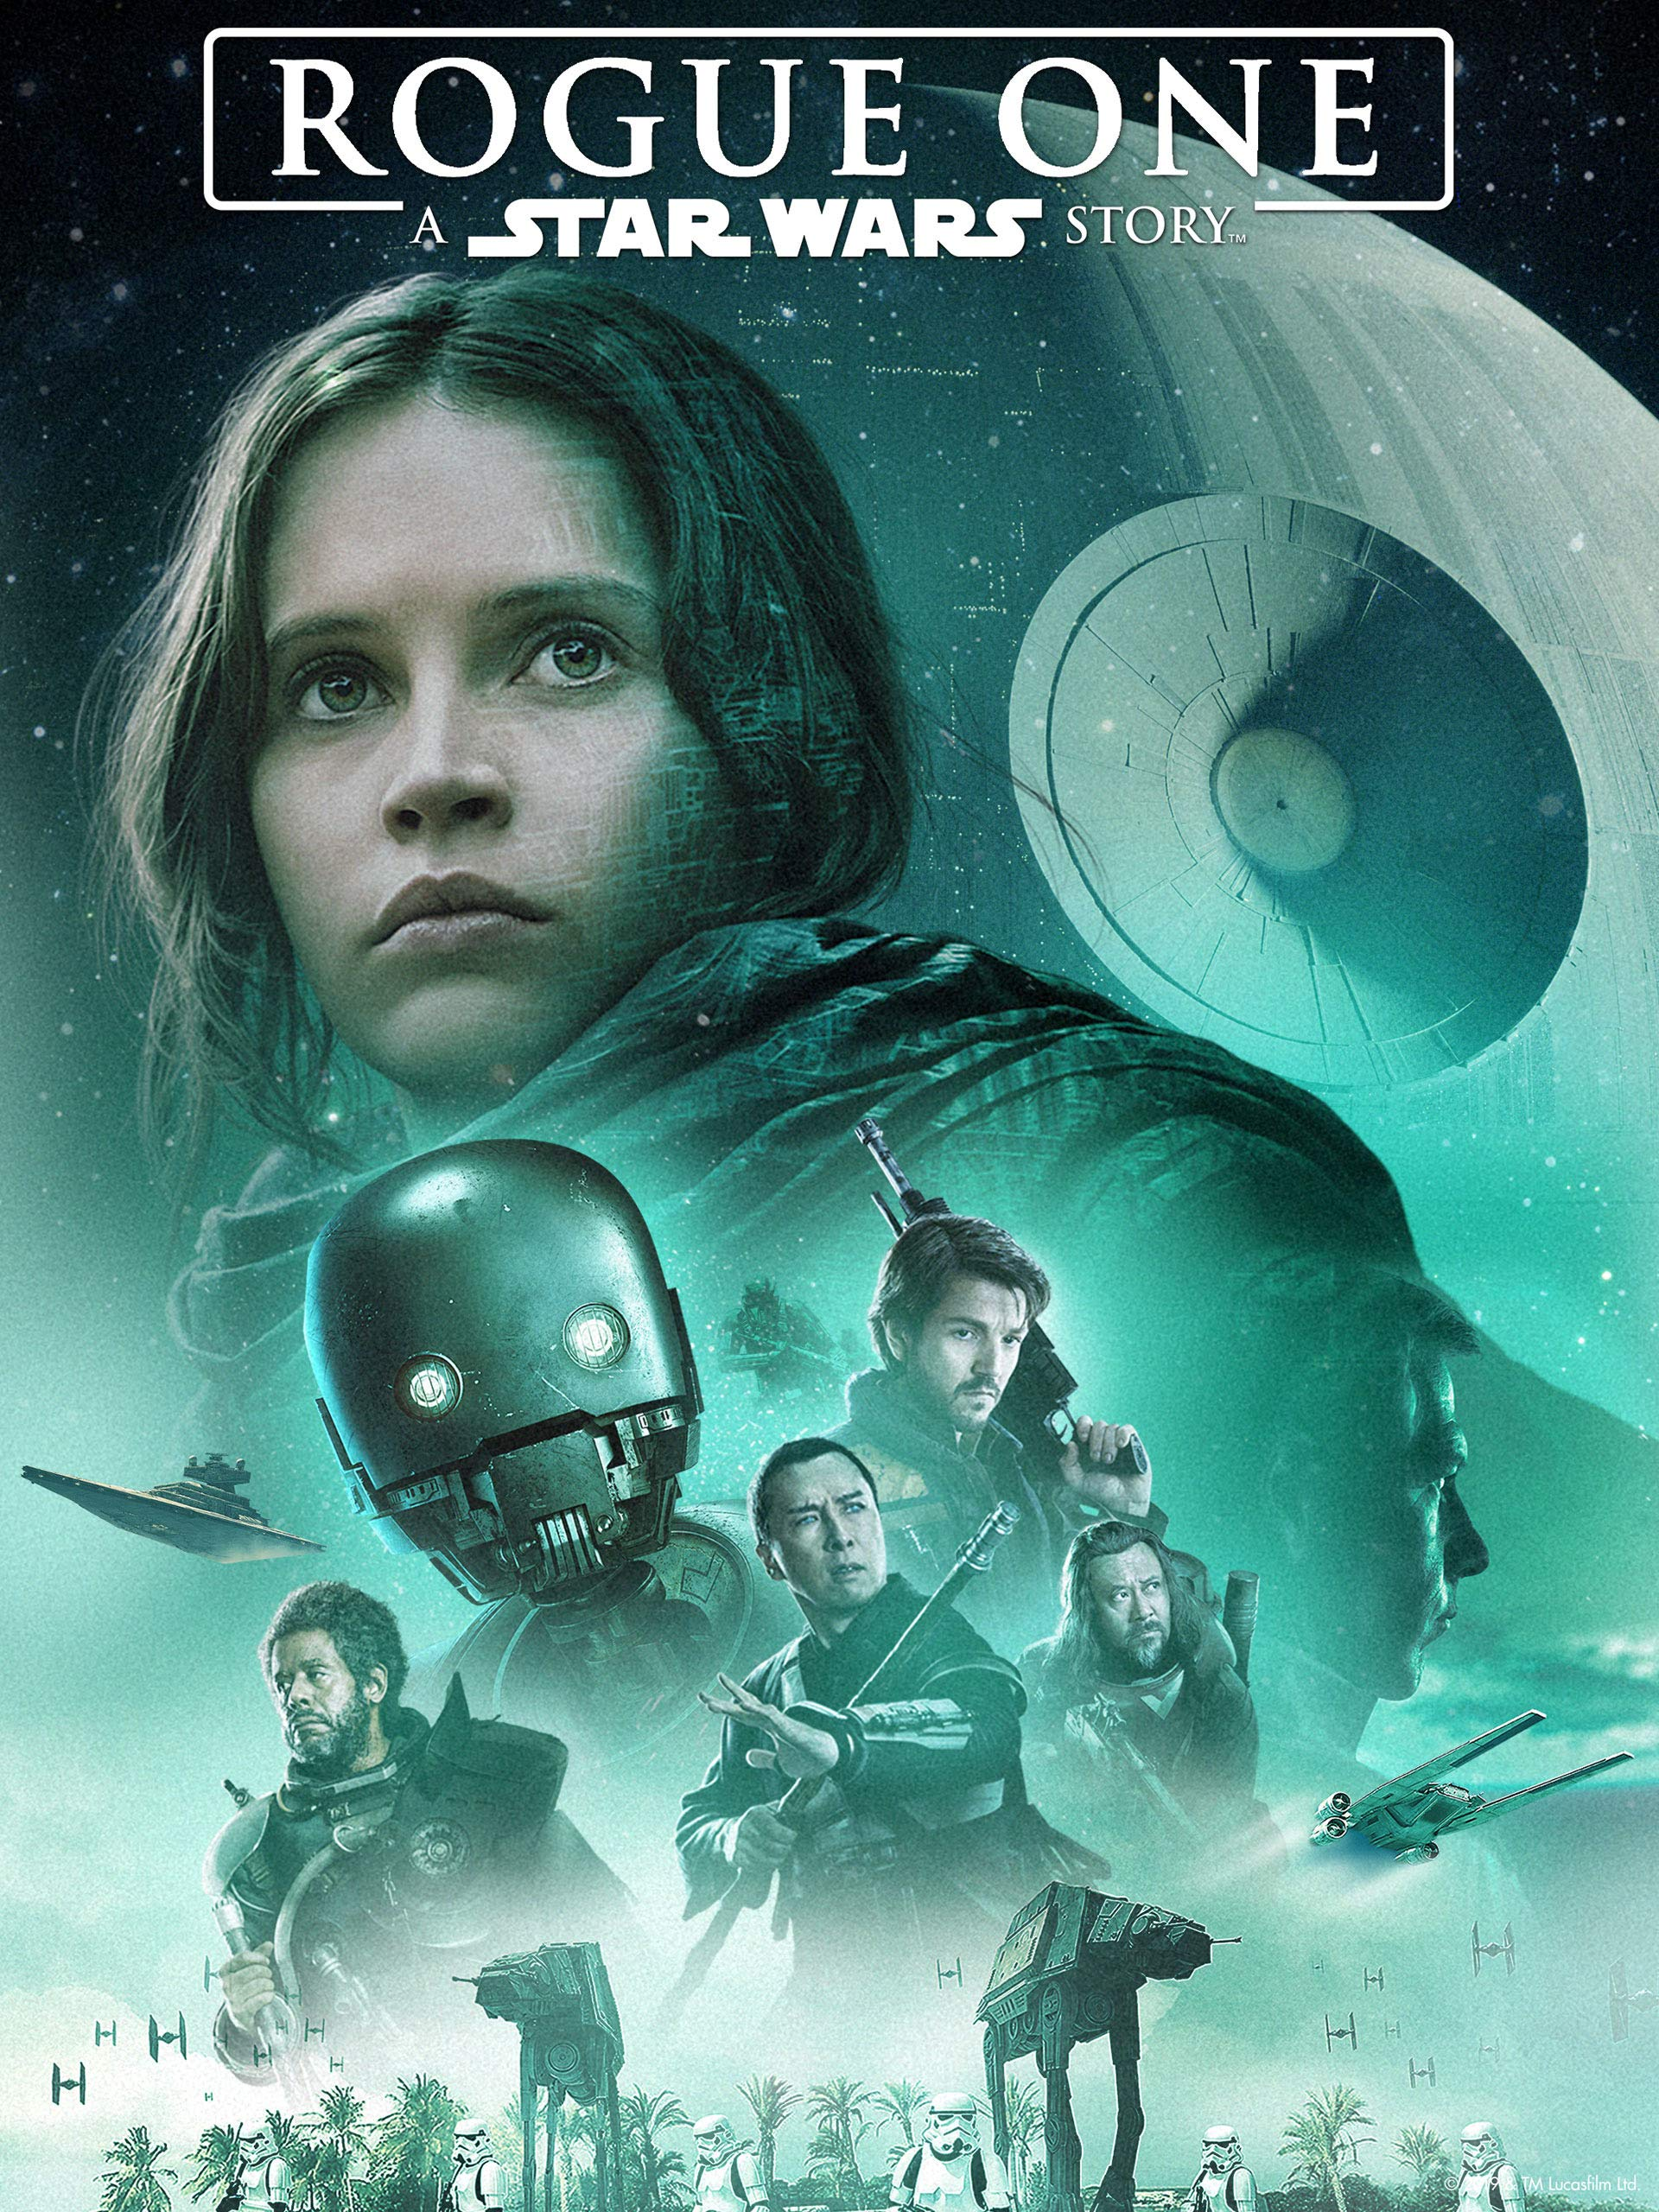 A3 Rogue One A Star Wars Story MOVIE Film Cinema Home Posters Art #10